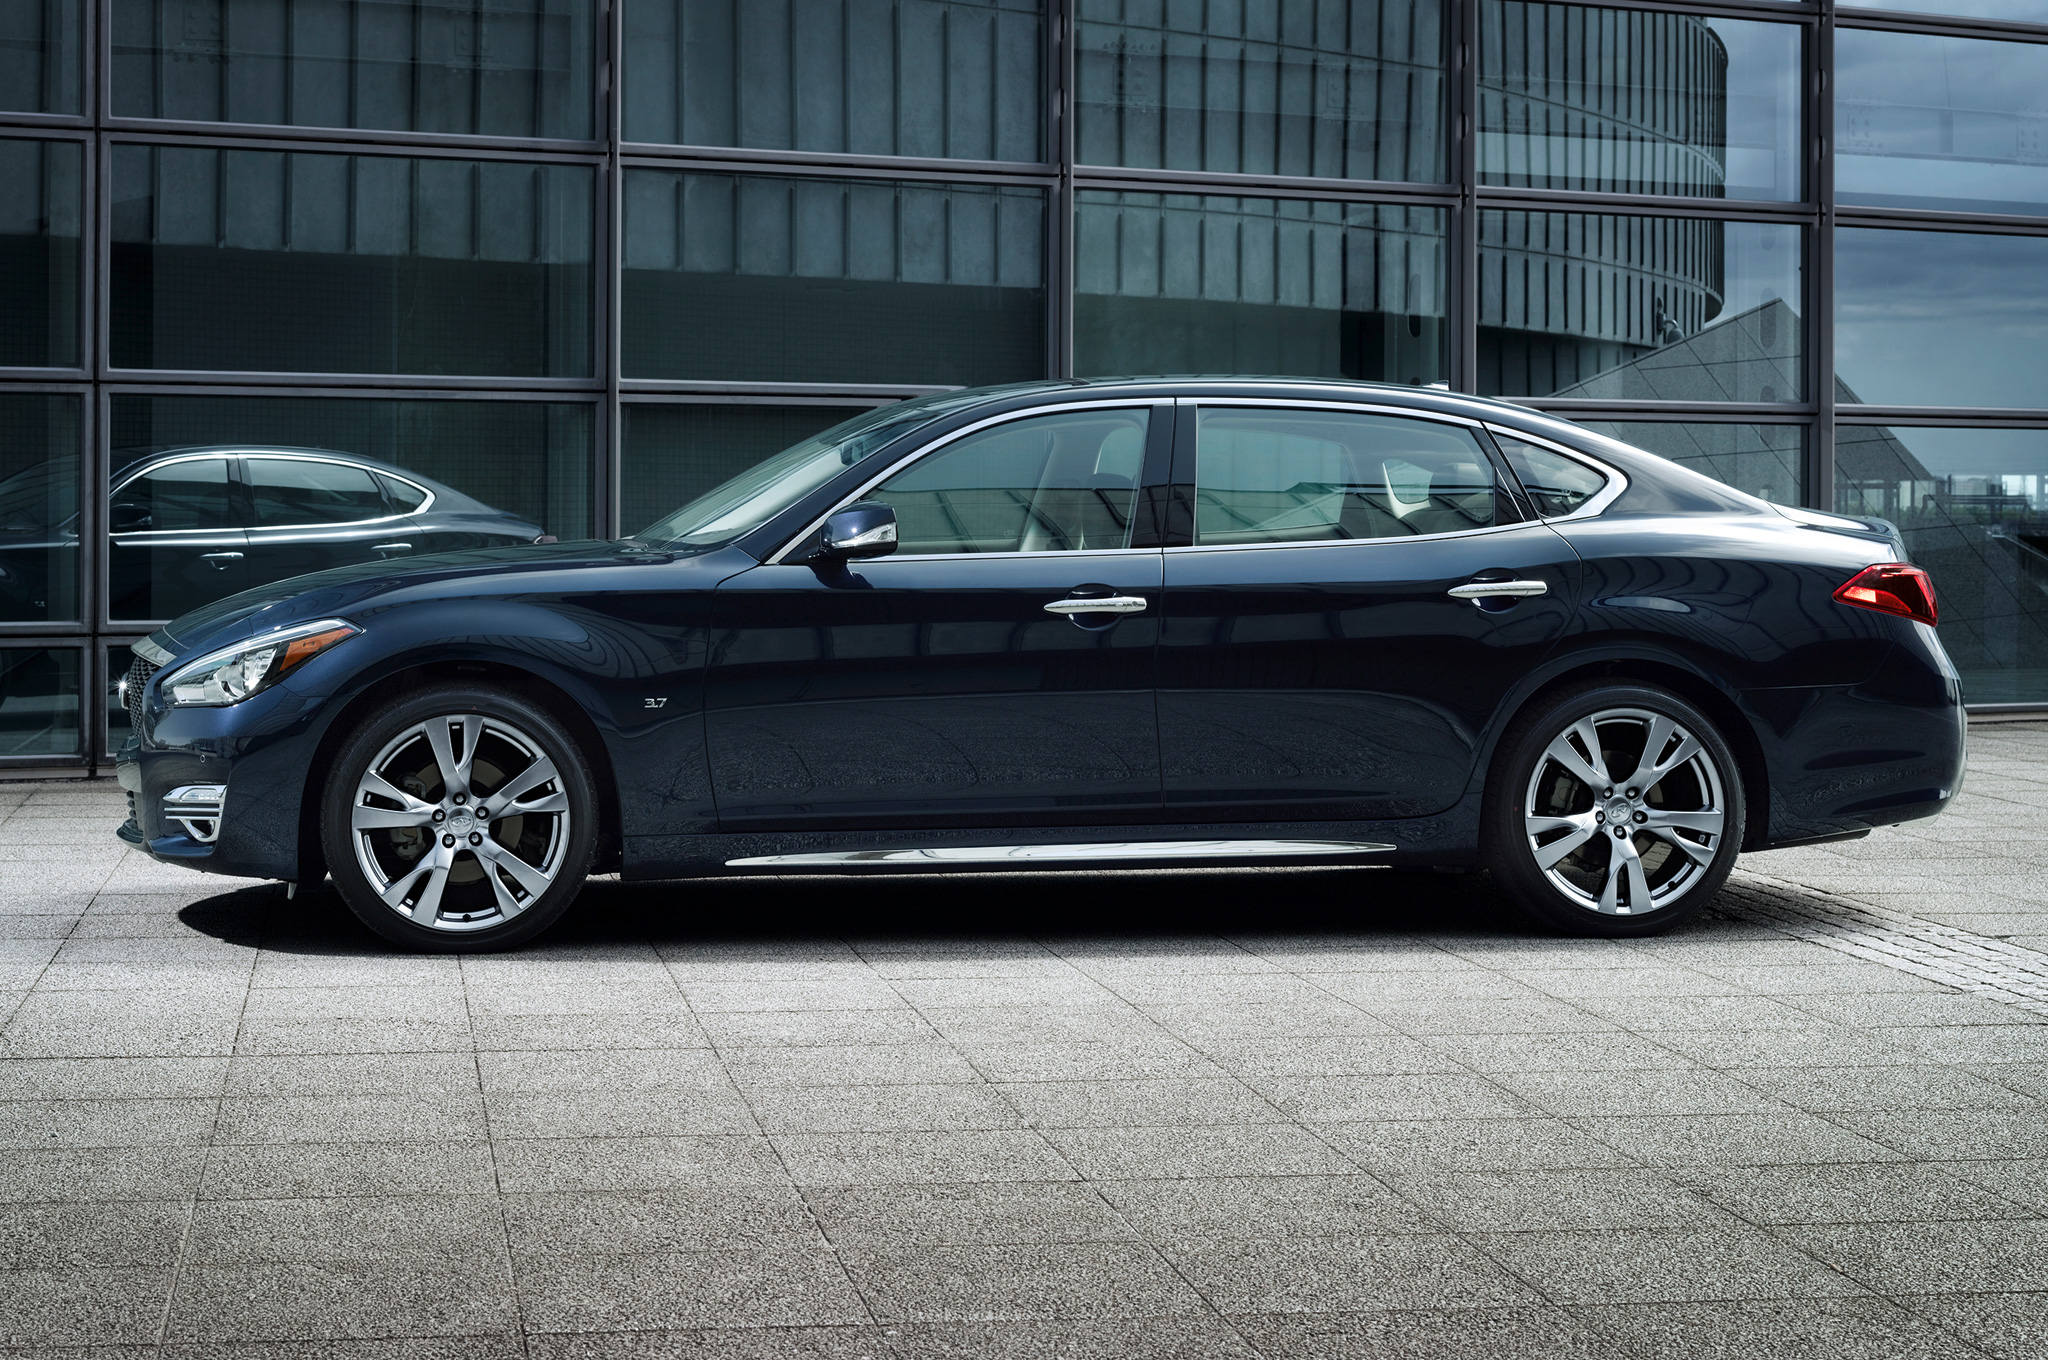 2015 Infiniti Q70l Side Profile (Photo 10 of 10)